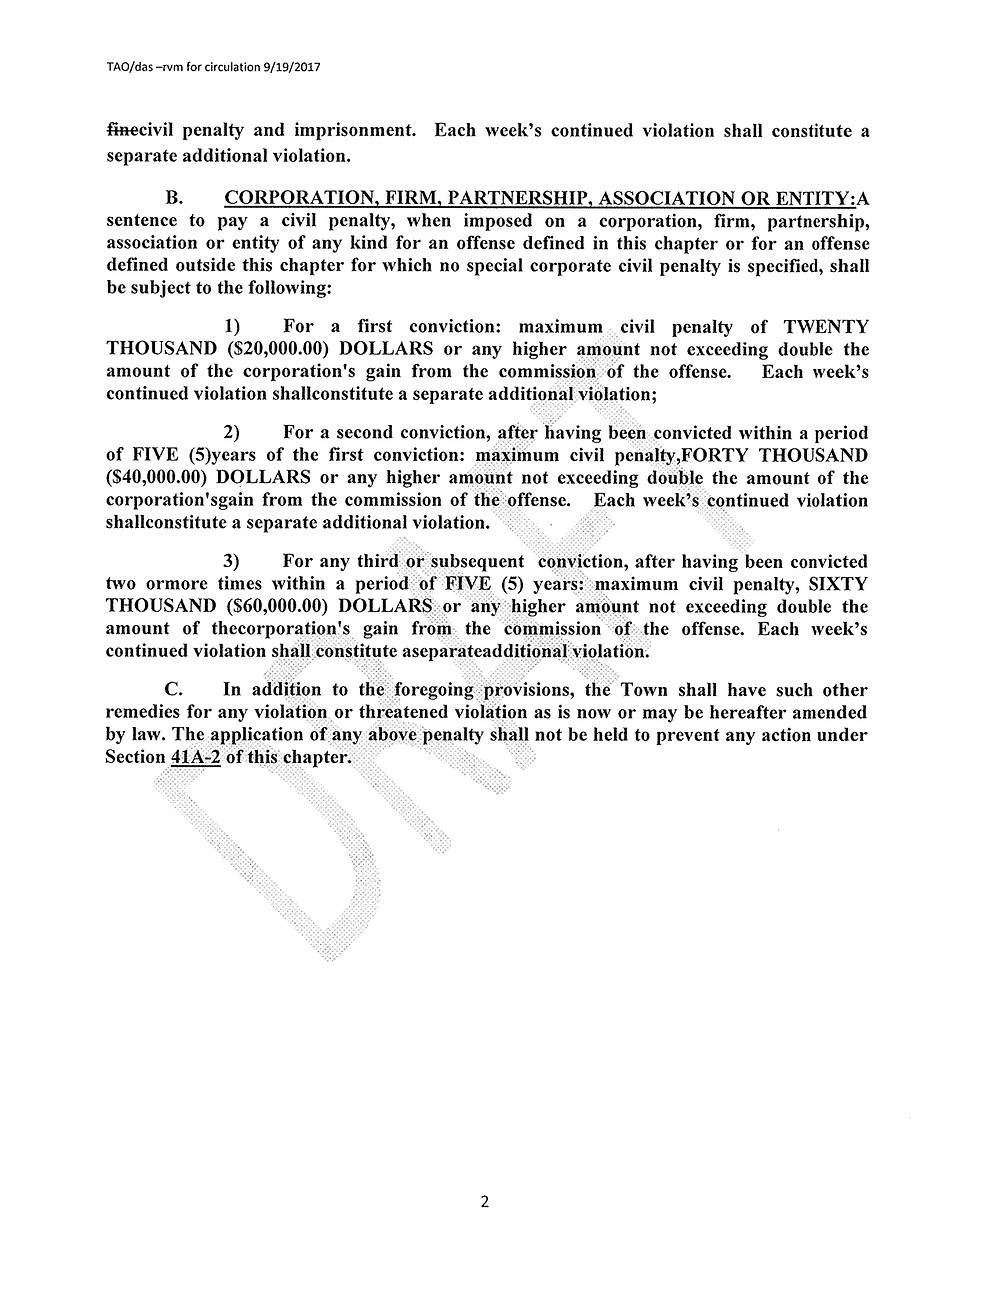 Proposed Law Page 2